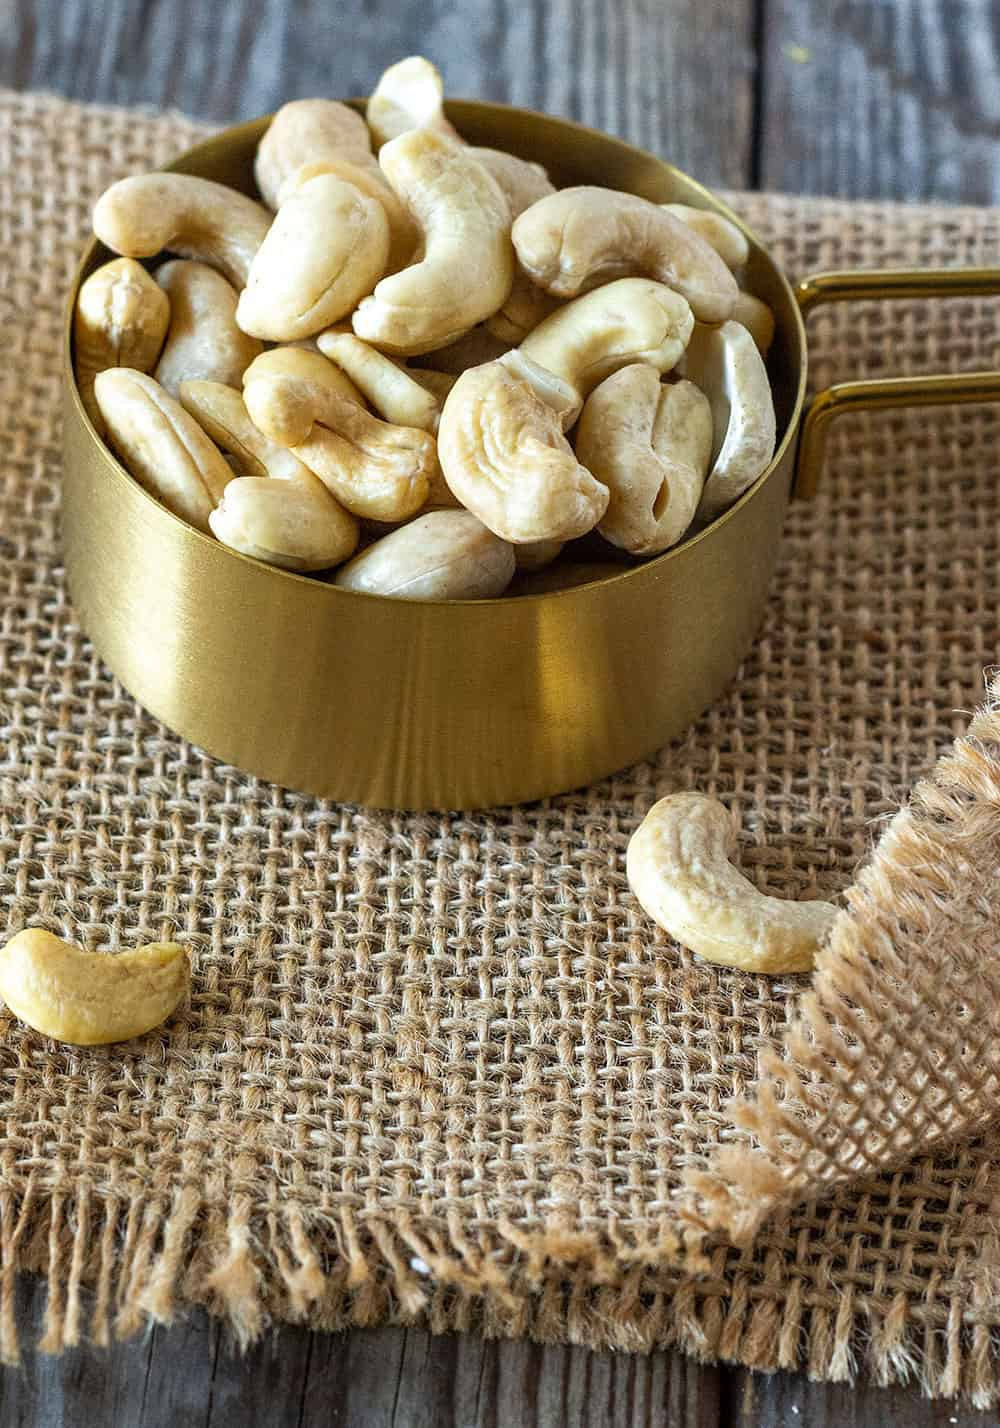 Whole cashews for cashew cream recipe in a gold measuring cup on a brown burlap napkin on a wooden board